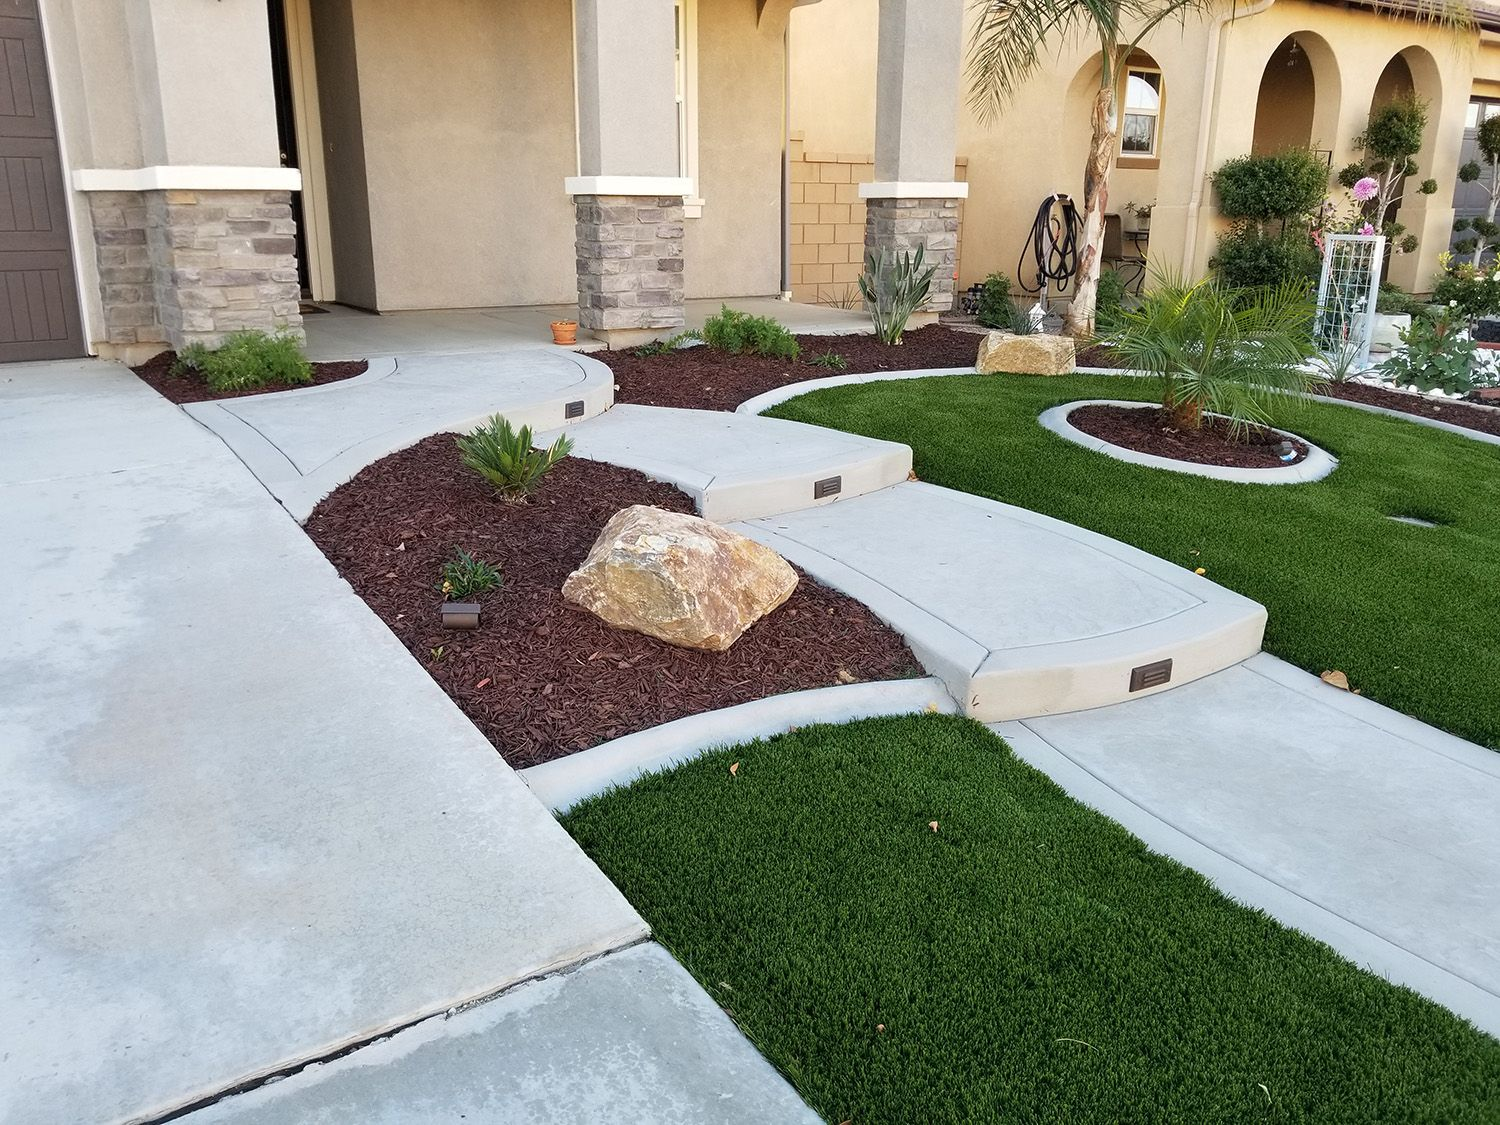 Transform Your Yard With Concrete Low Water Landscaping Pathway